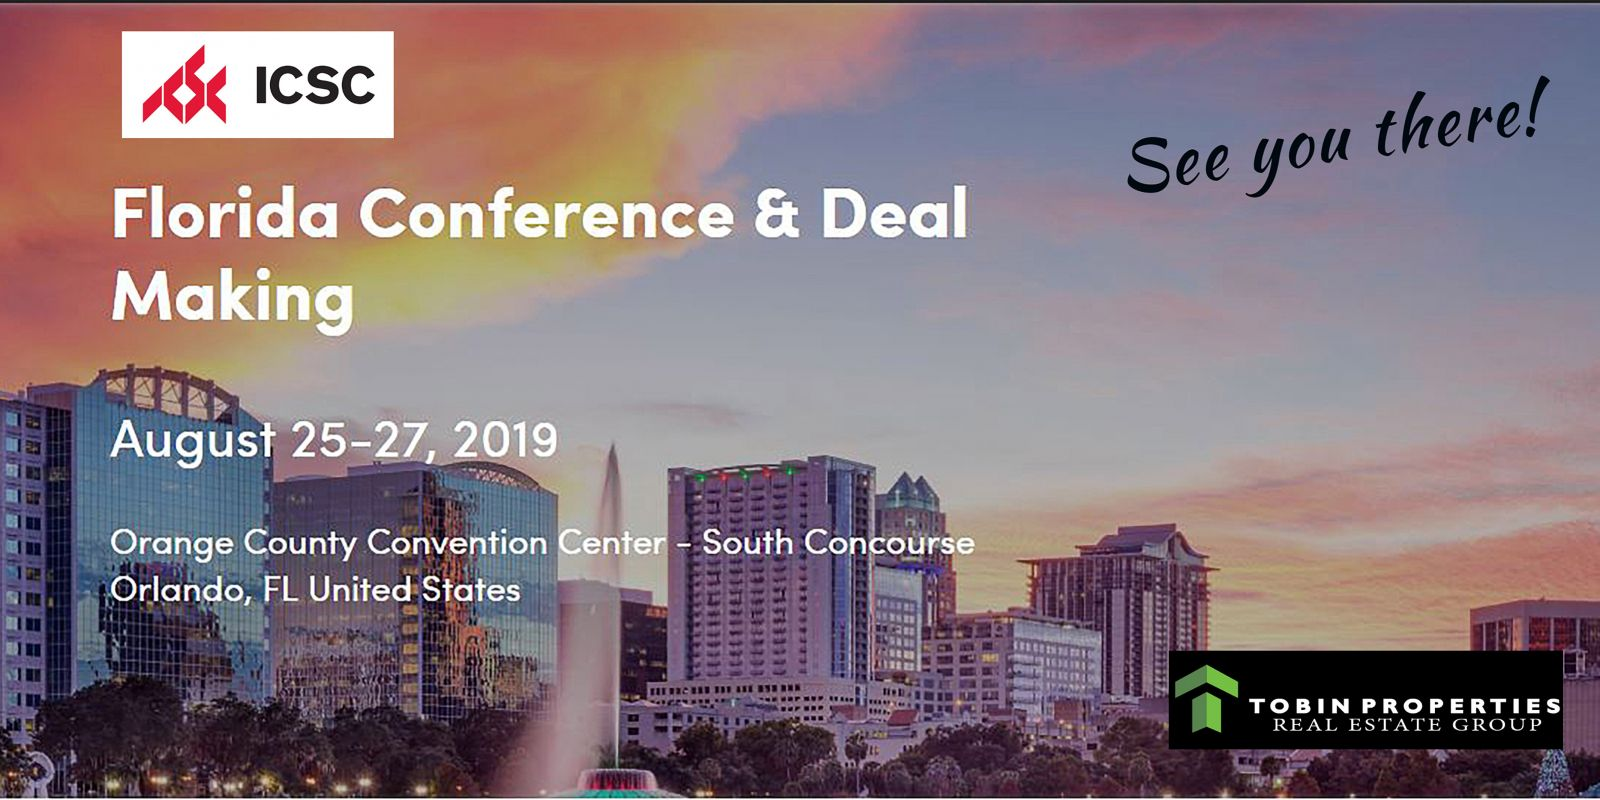 image of Tobin Properties Real Estate Group will be at the upcoming ICSC FLORIDA CONFERENCE & DEAL MAKING 2019 (Aug. 25 - 27) to continue our commitment in the Industry. We encourage Principles, Clients, and Prospects to schedule an appointment to meet with us at the convention. Send us an email: info@tobinprop.com. See you in Orlando!